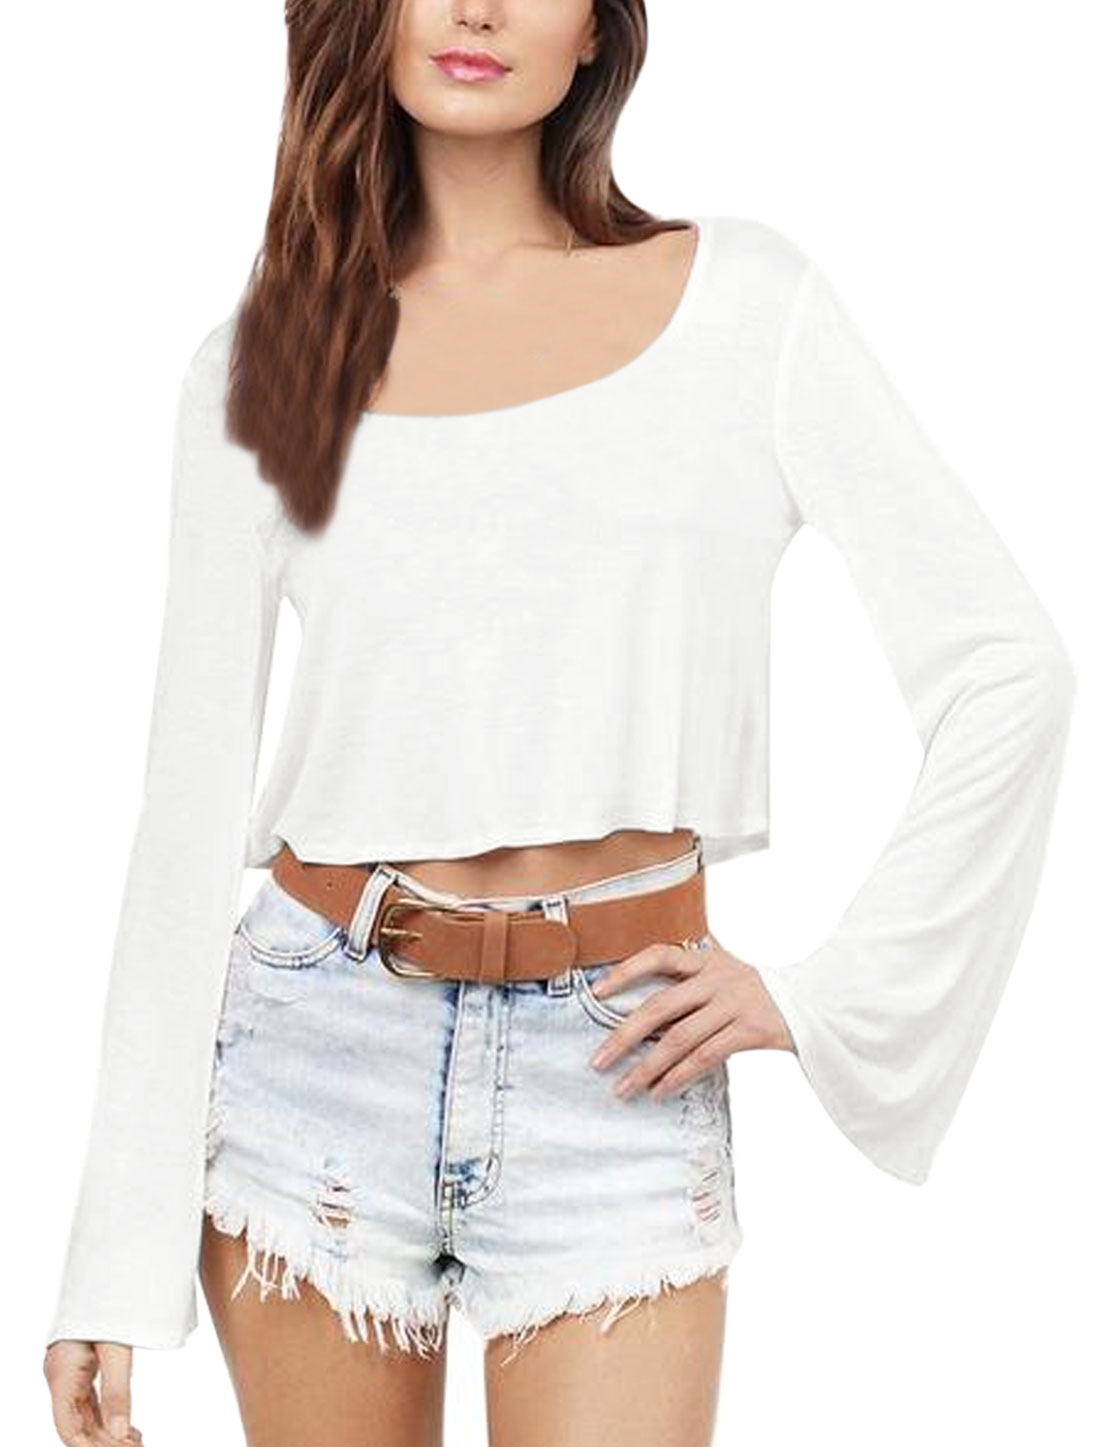 Women Scoop Neck Trumpet Sleeves Crop Top White M